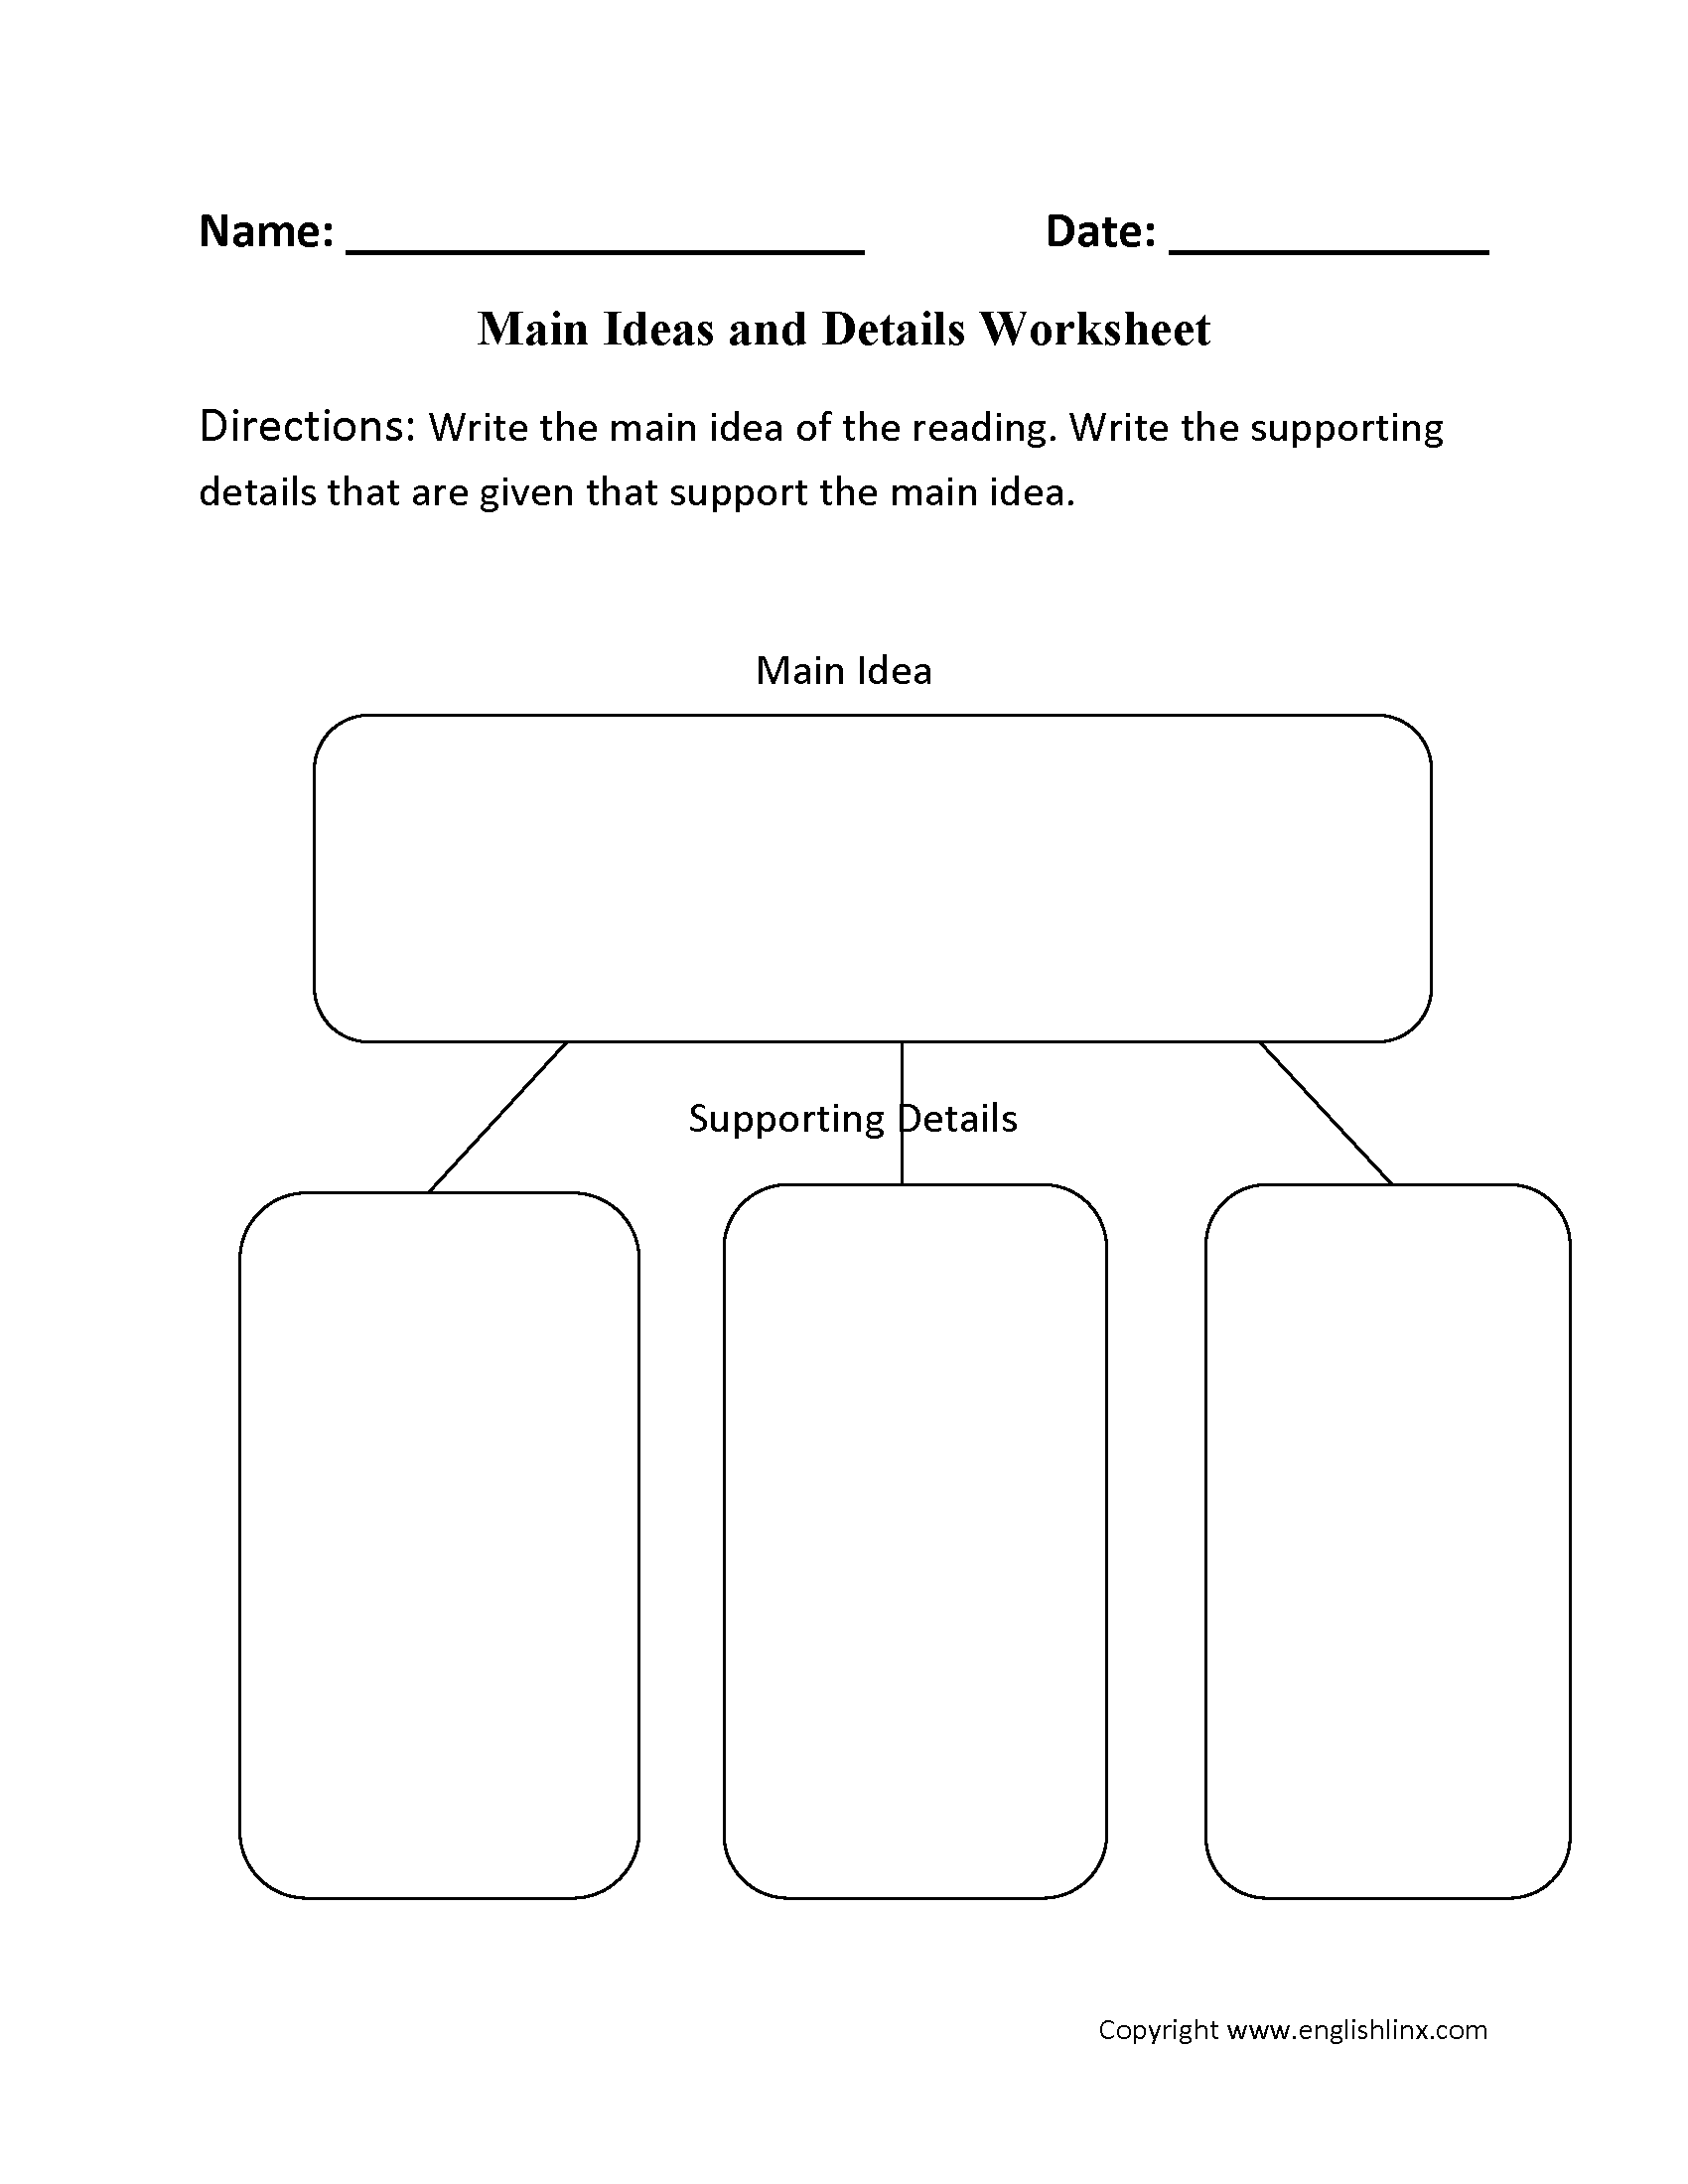 Worksheets Main Idea And Supporting Details Worksheets 4th Grade reading worksheets main idea and details worksheet